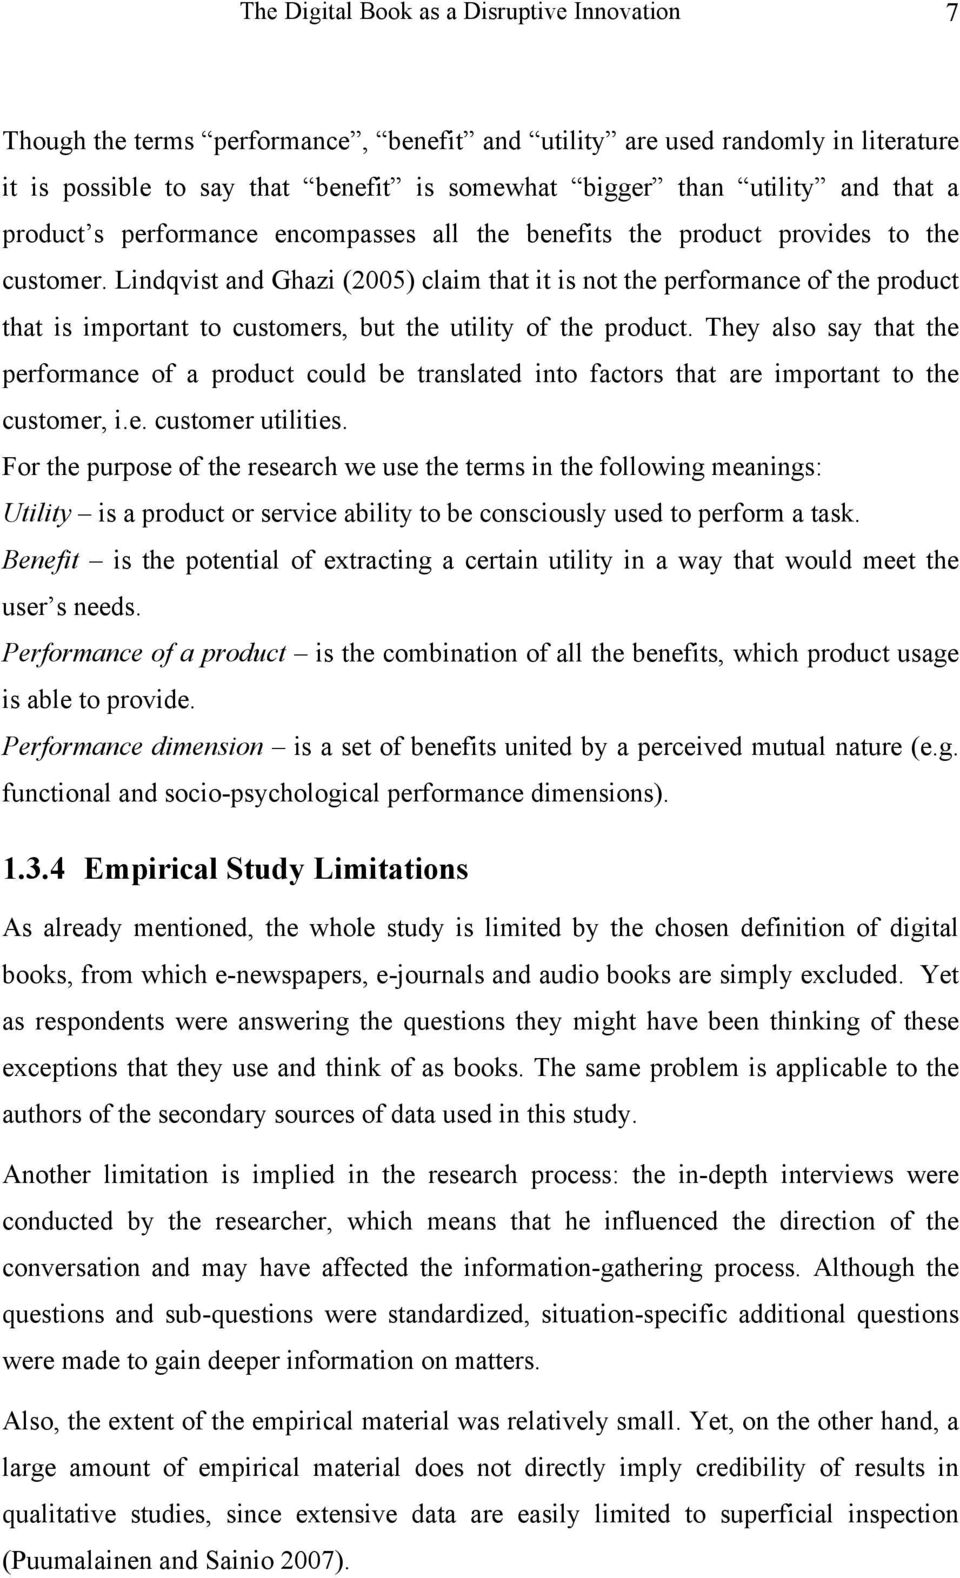 Lindqvist and Ghazi (2005) claim that it is not the performance of the product that is important to customers, but the utility of the product.